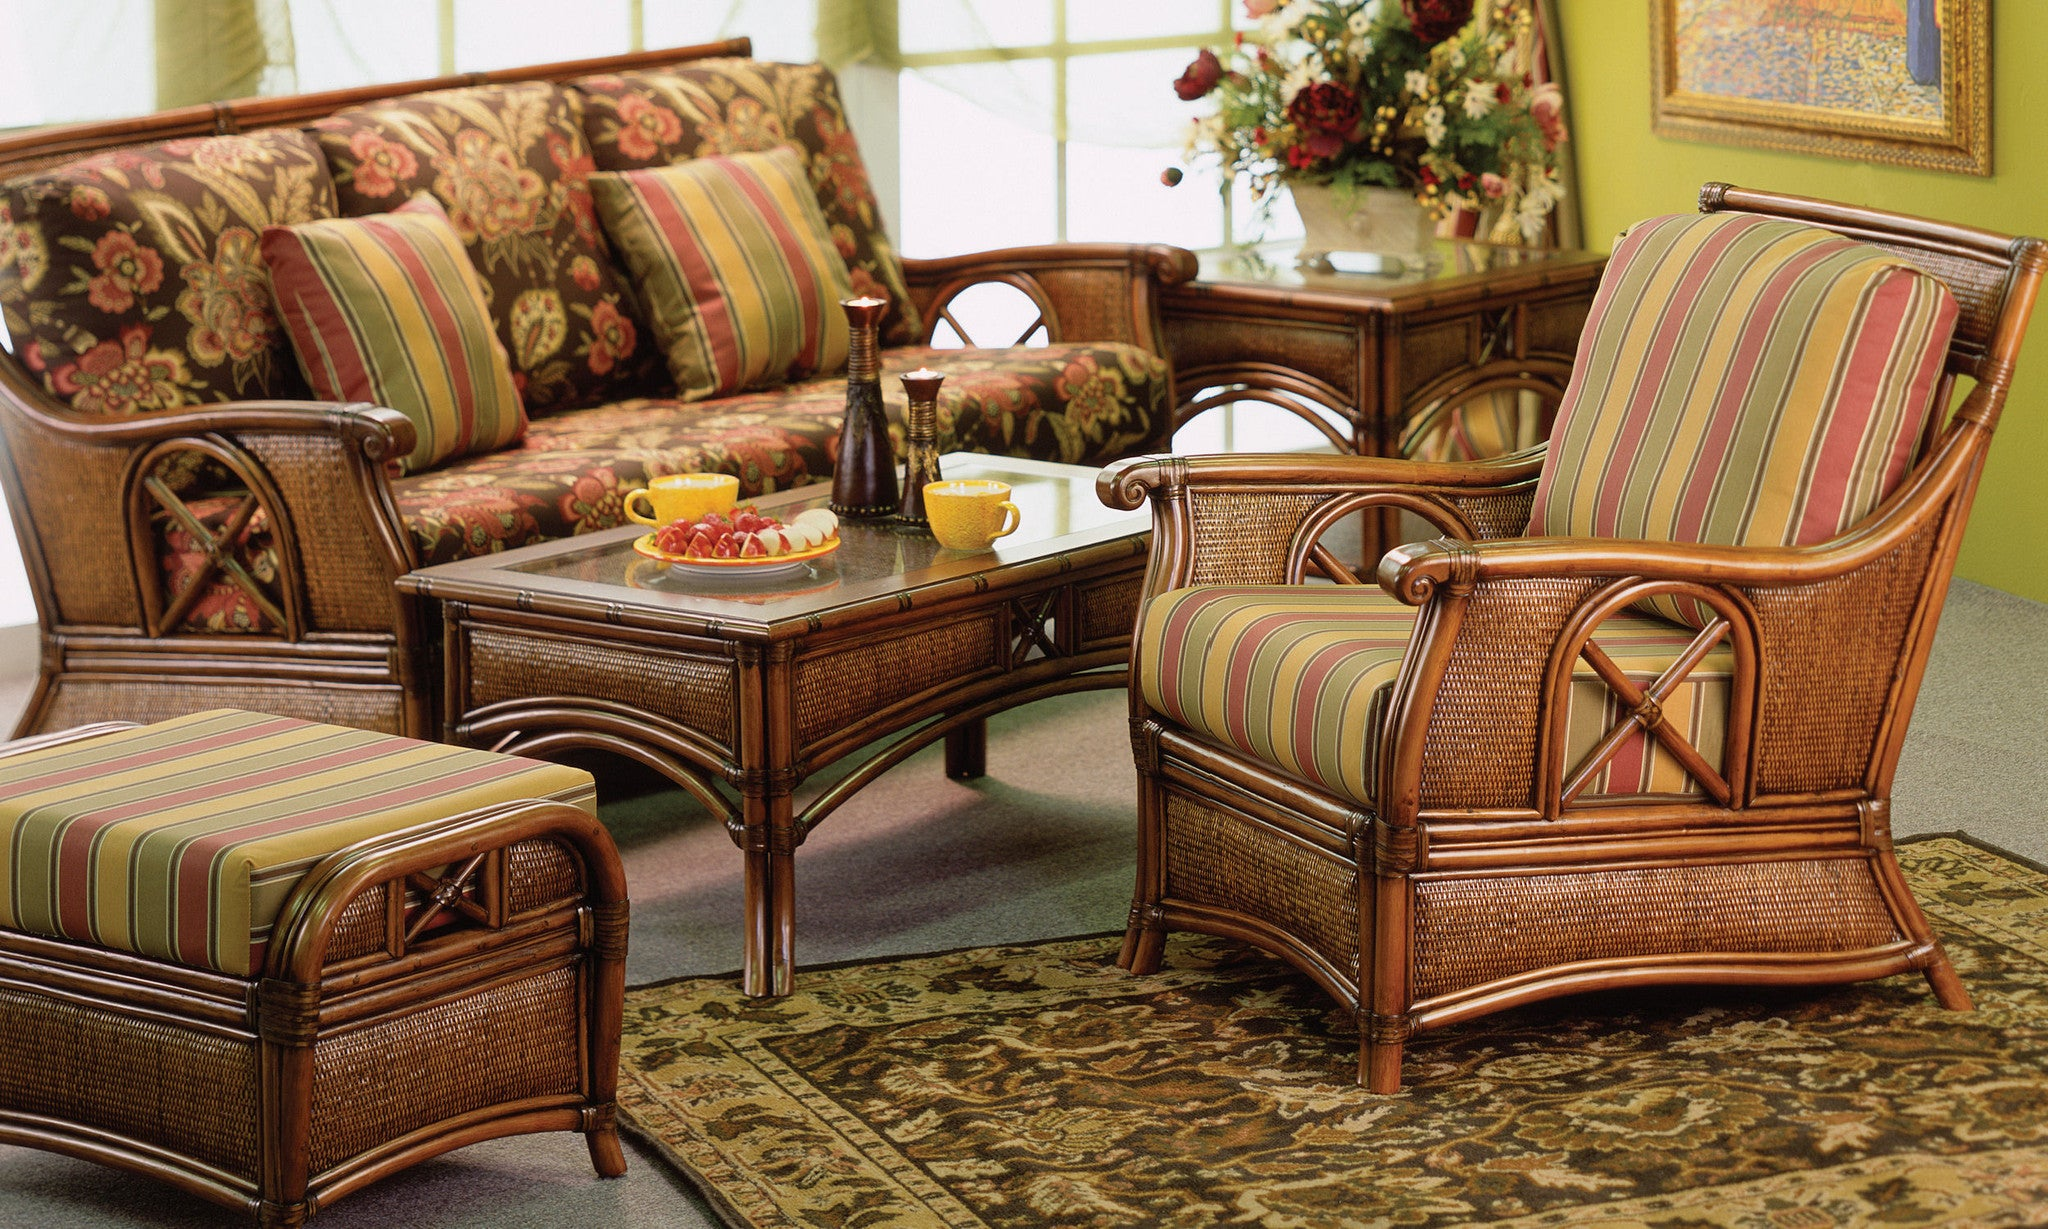 Living Room Wicker Furniture Luxe Furniture Company Winnipeg High Quality Home Patio Furniture